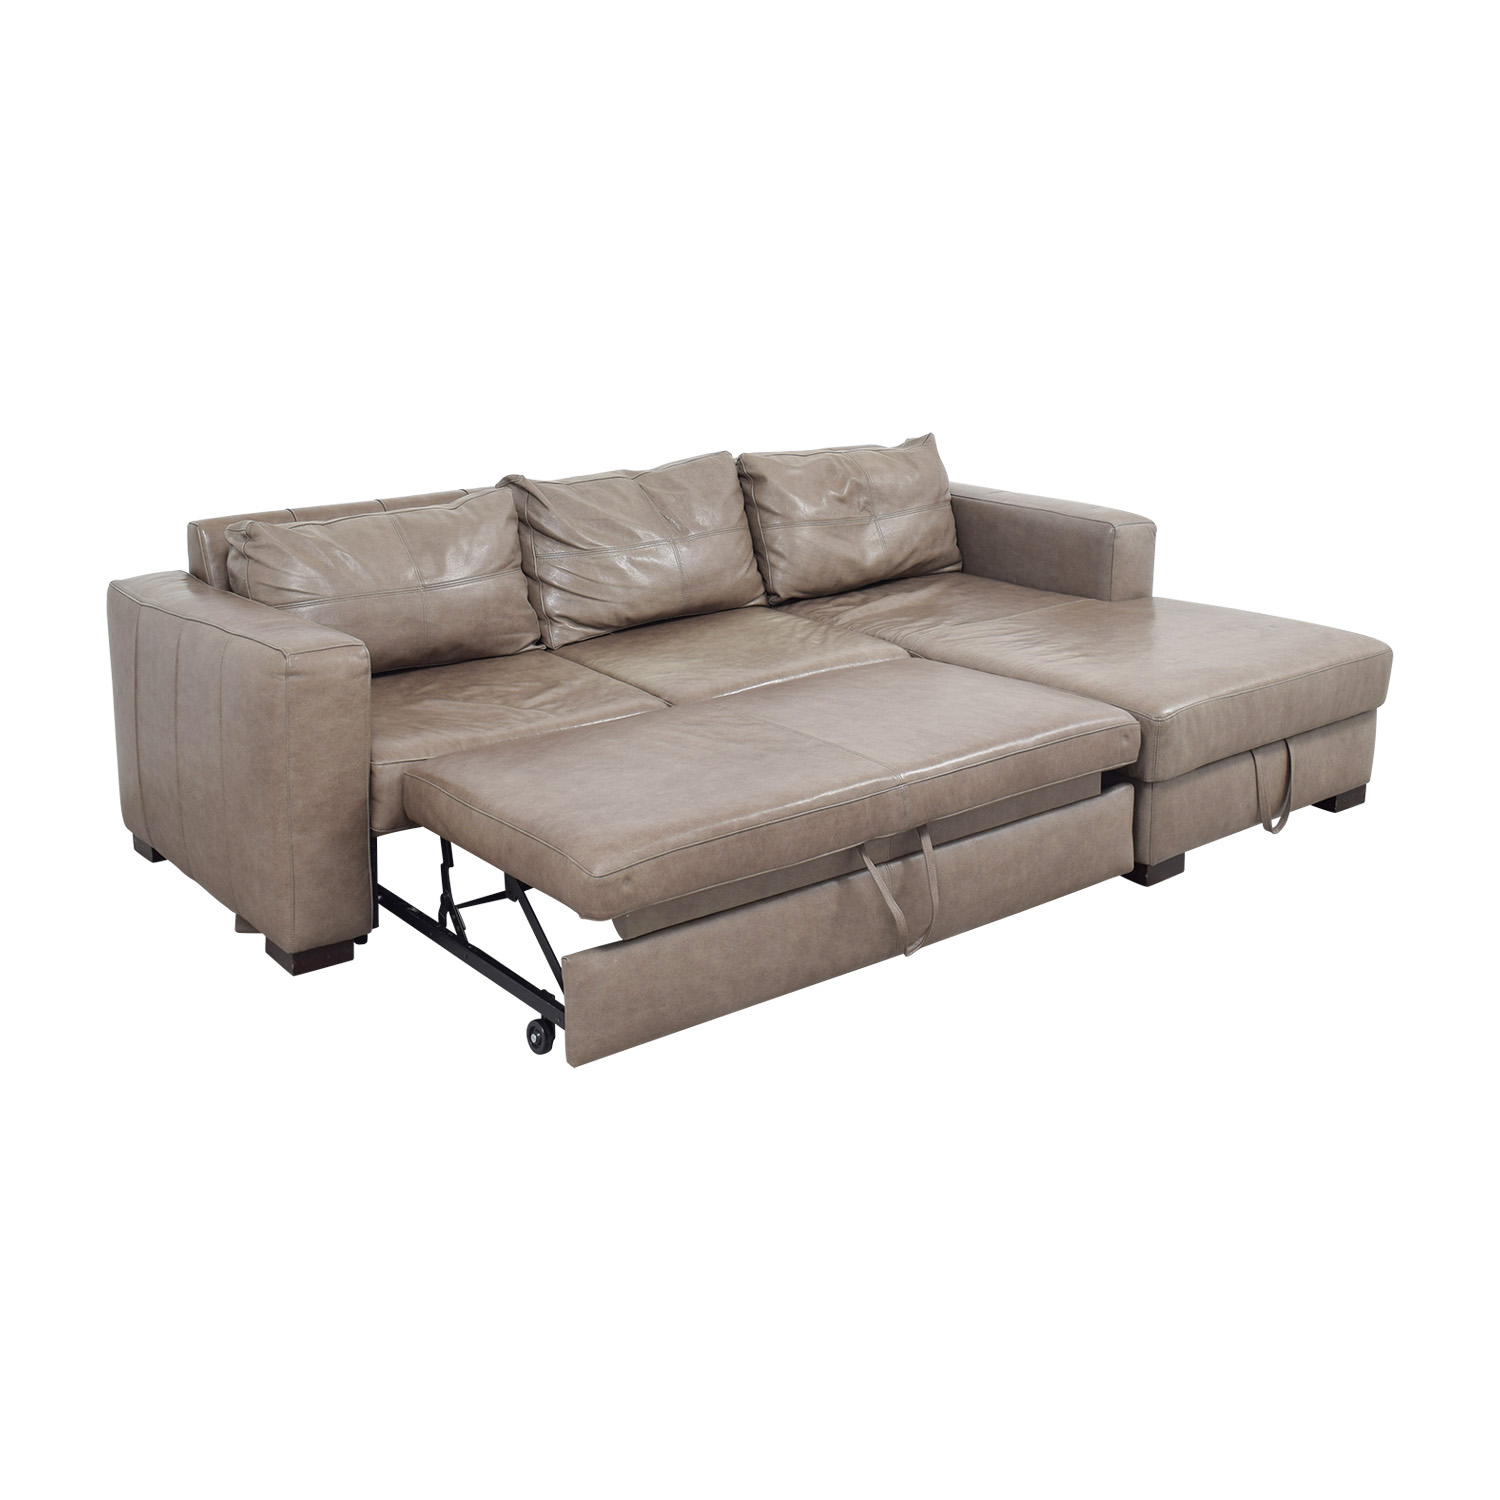 ... Arhaus Arhaus Grey Soft Leather Convertible Sleeper Sofa Coupon ...